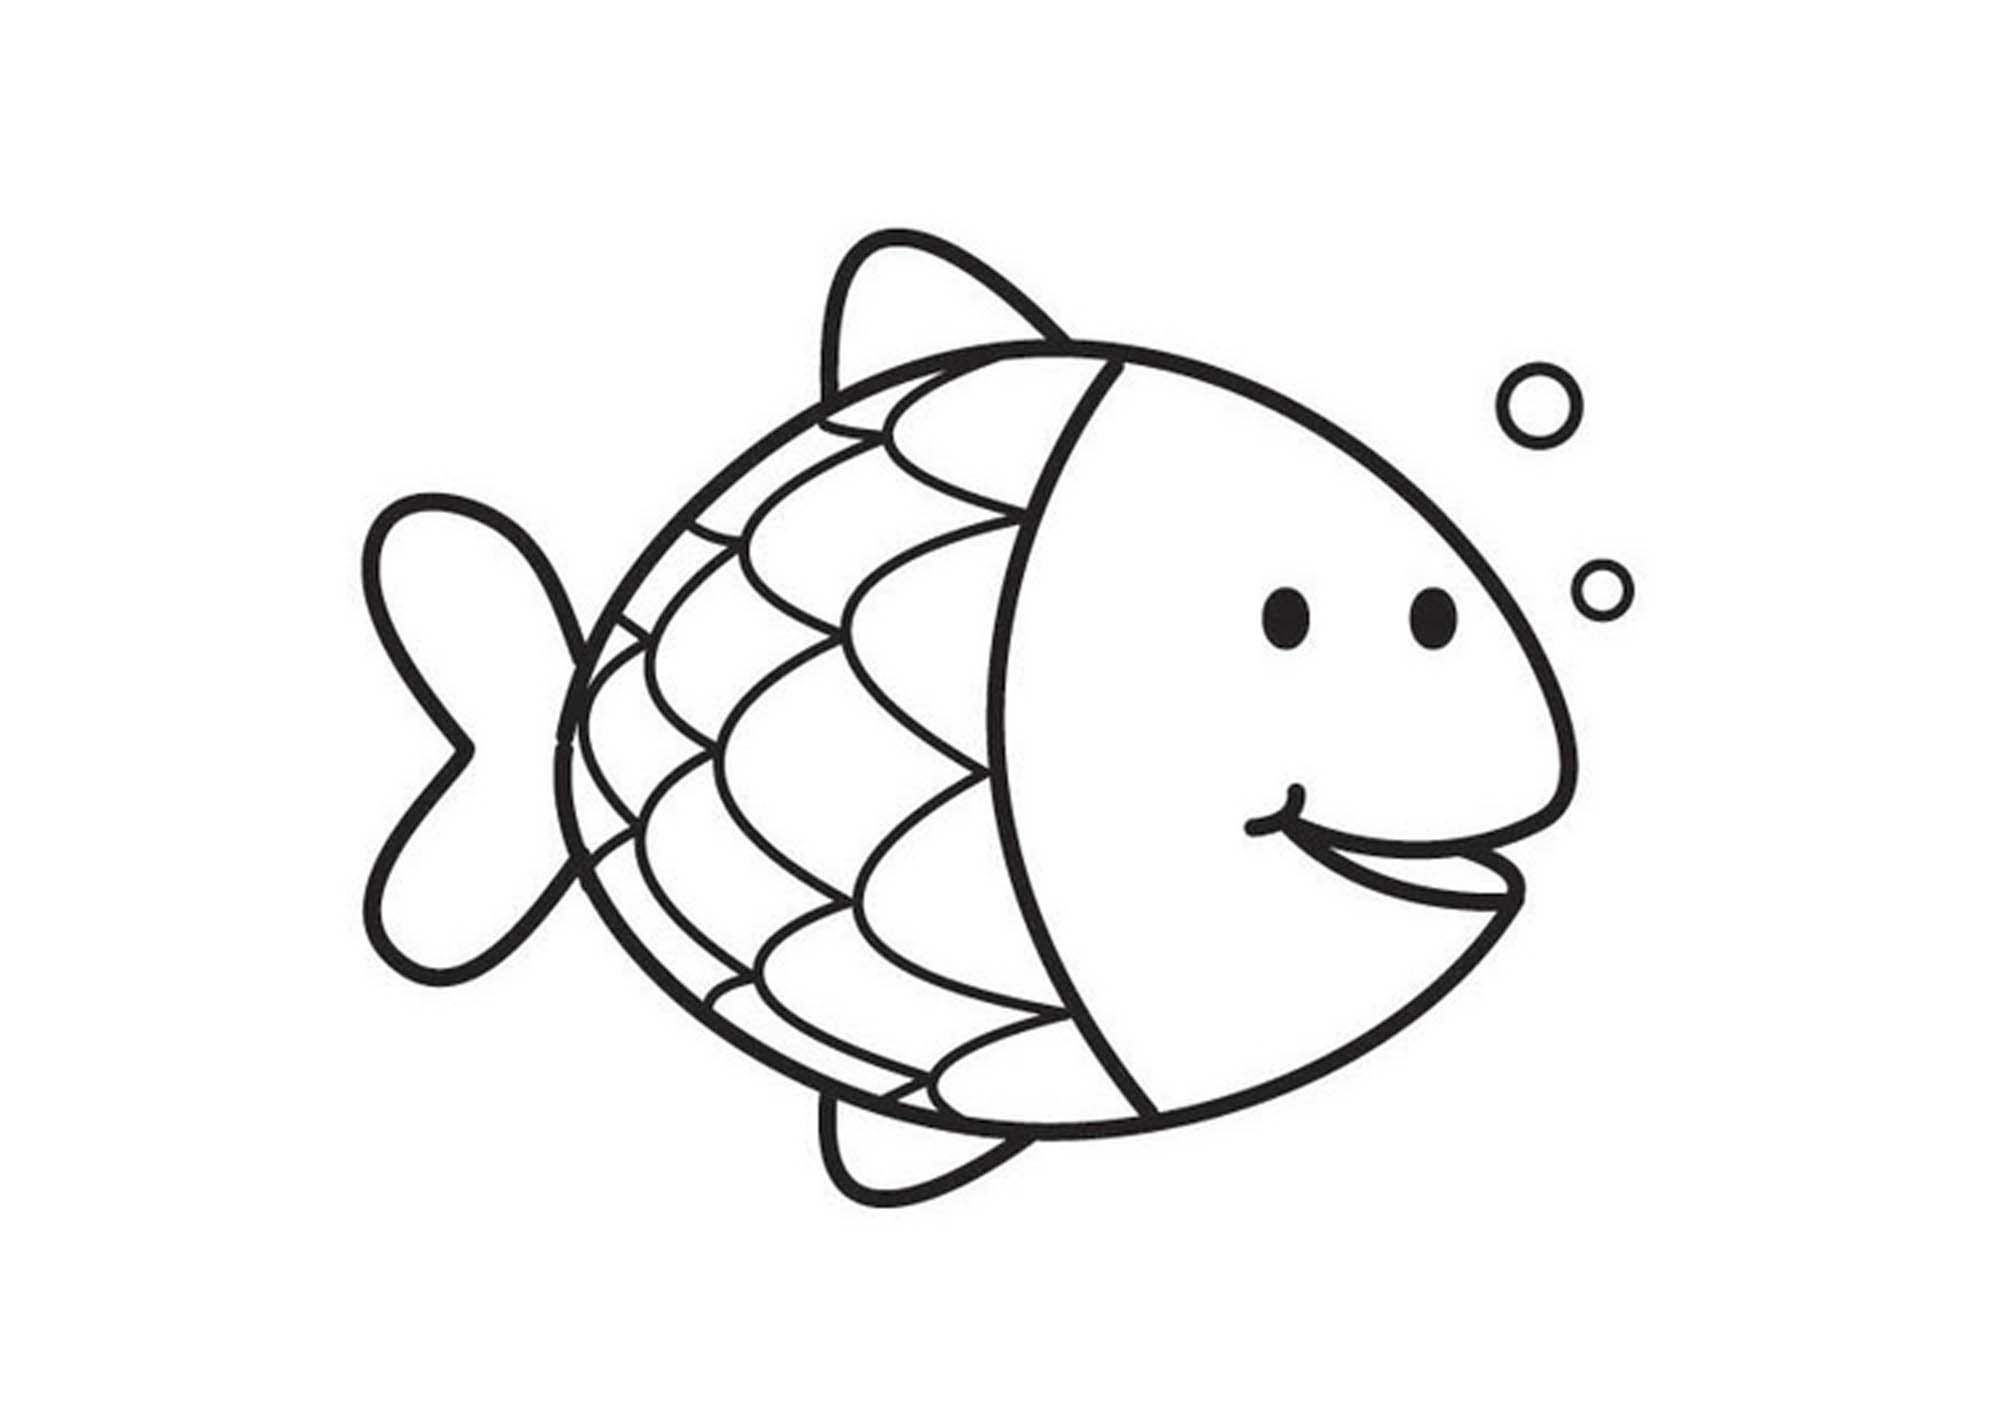 gallery of cute and educative fish coloring pages - Fishing Coloring Pages